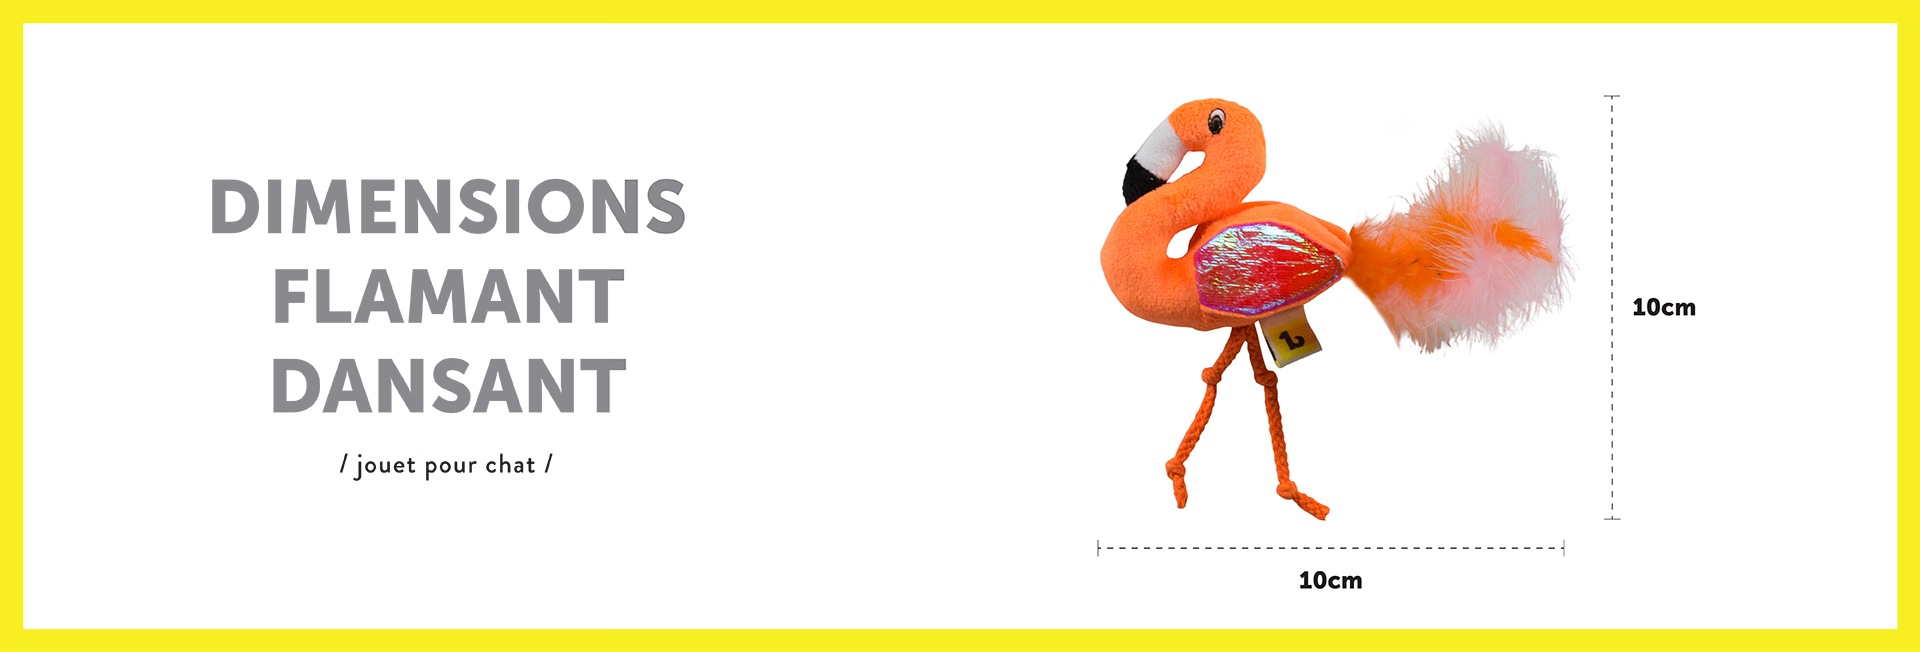 dimensions-dancing-flamingo-for-cats-french